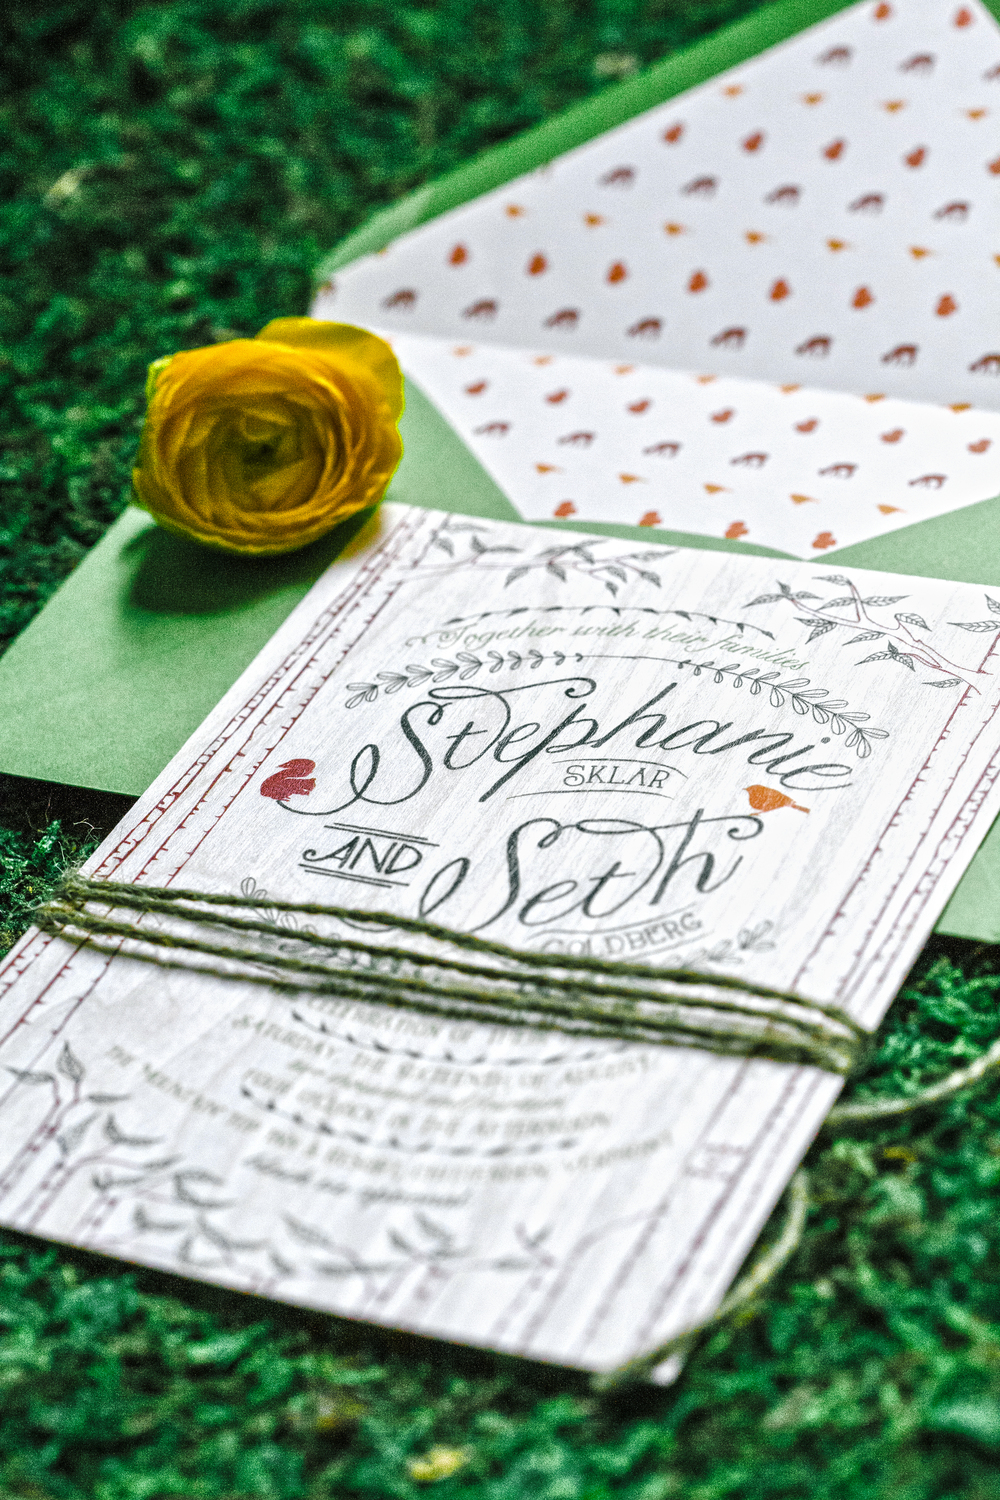 The invitation was printed on Aspen wood veneer with a perky green envelope and critter pattern envelope liner.